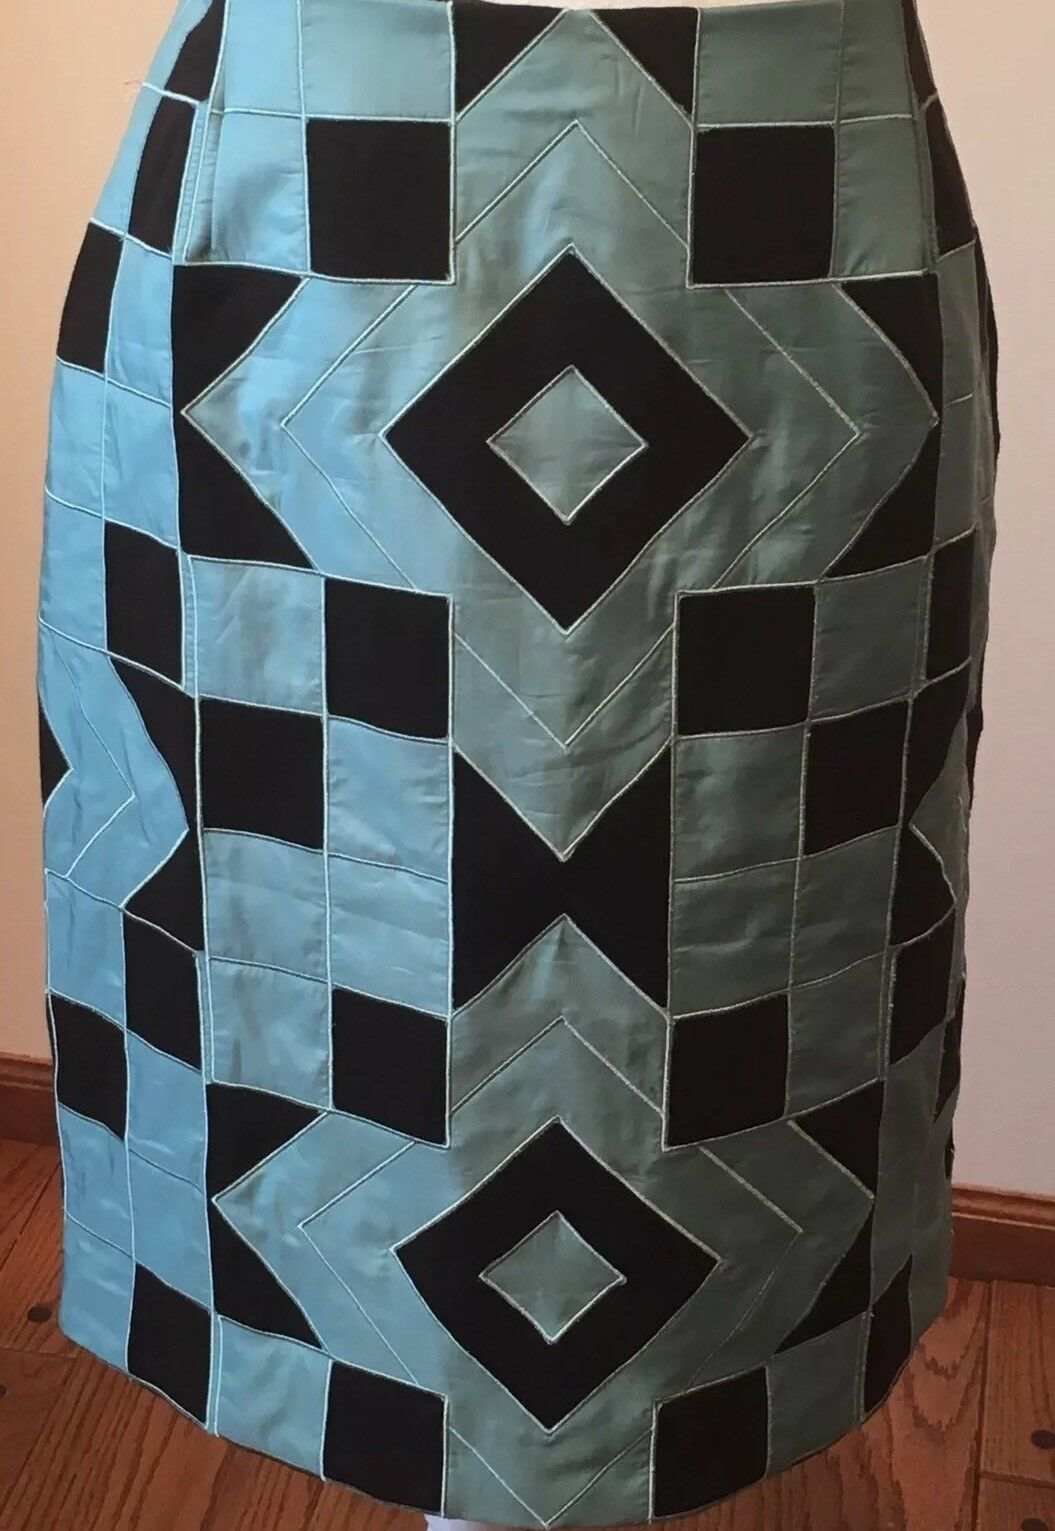 NEW  SATINY GREEN & BROWN GEOMETRIC SKIRT  BY CARLISLE  SIZE 10  Retail  455